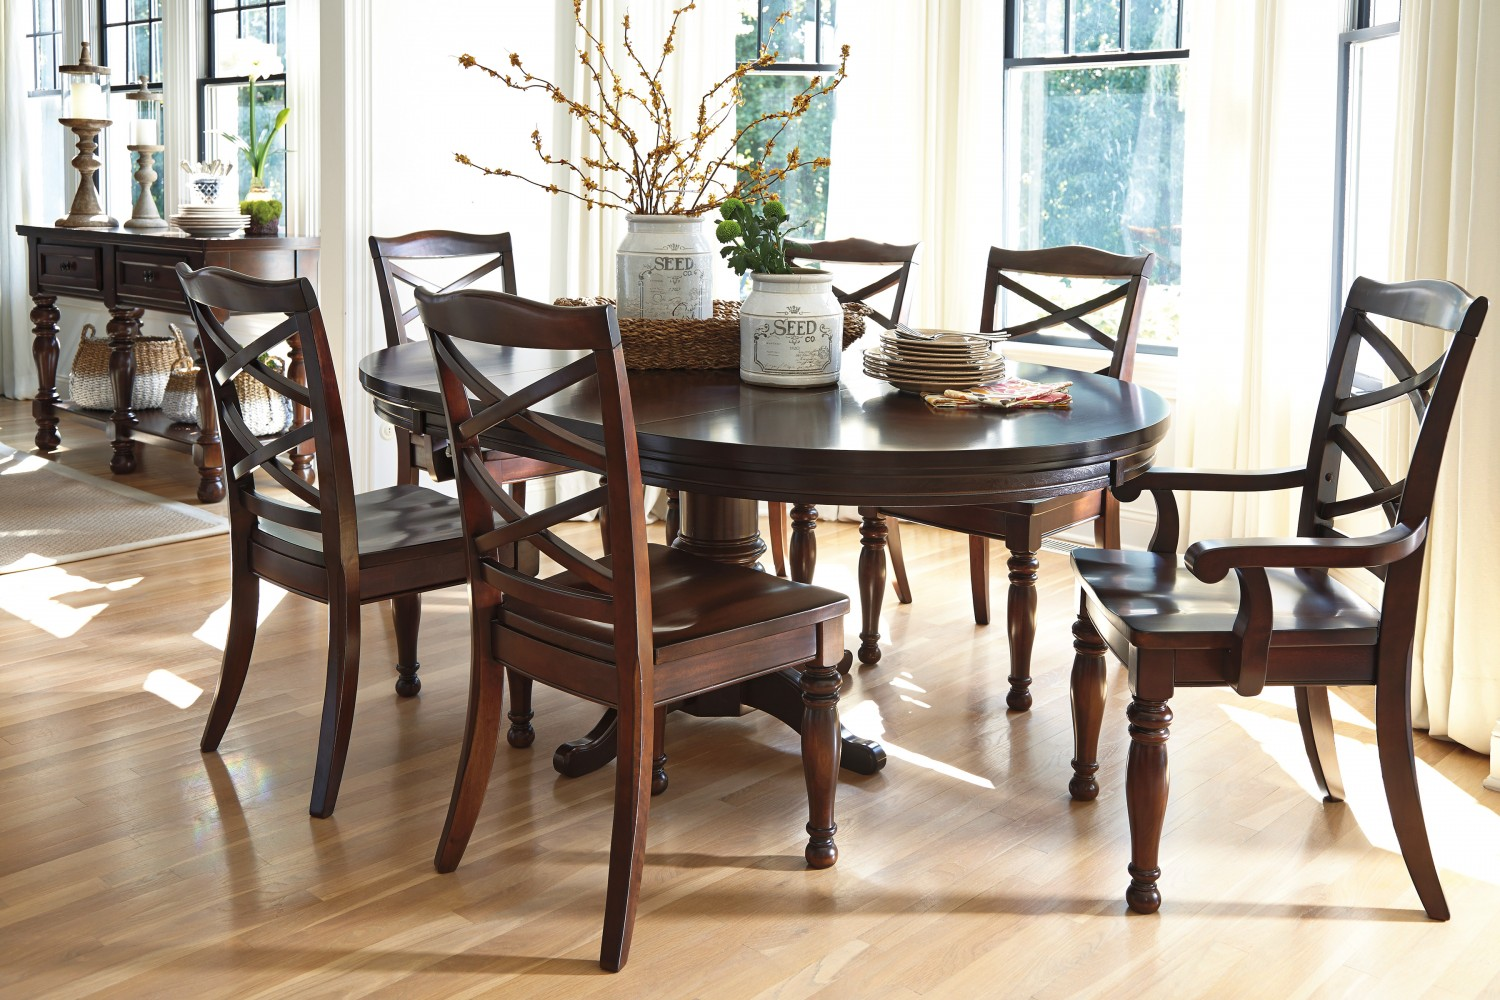 Uncategorized Ashley Furniture Kitchen Table furniture buying guide for kitchen tables ashley homestore